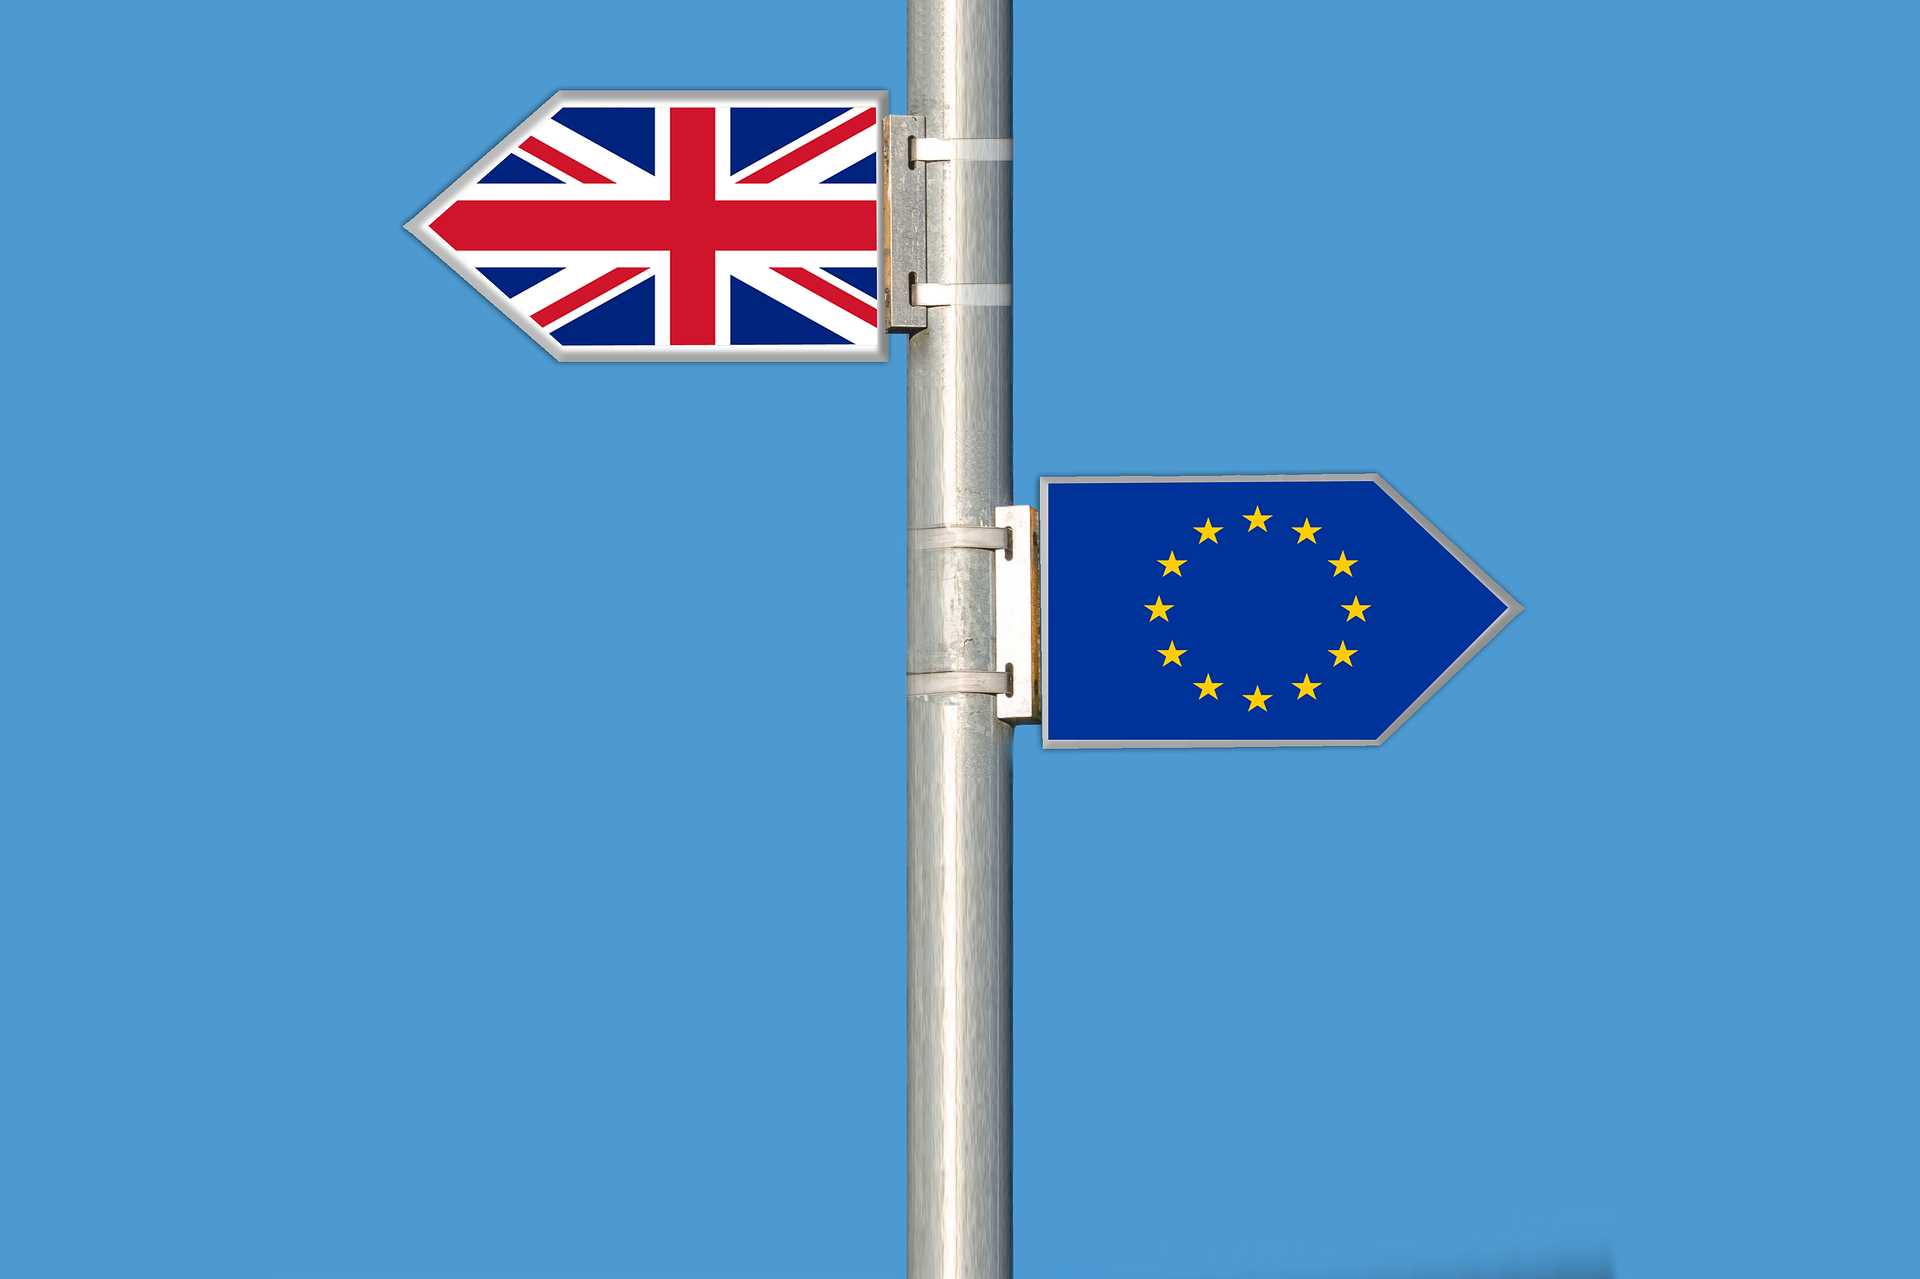 What The Brexit Negotiations and Property Deals Have in Common